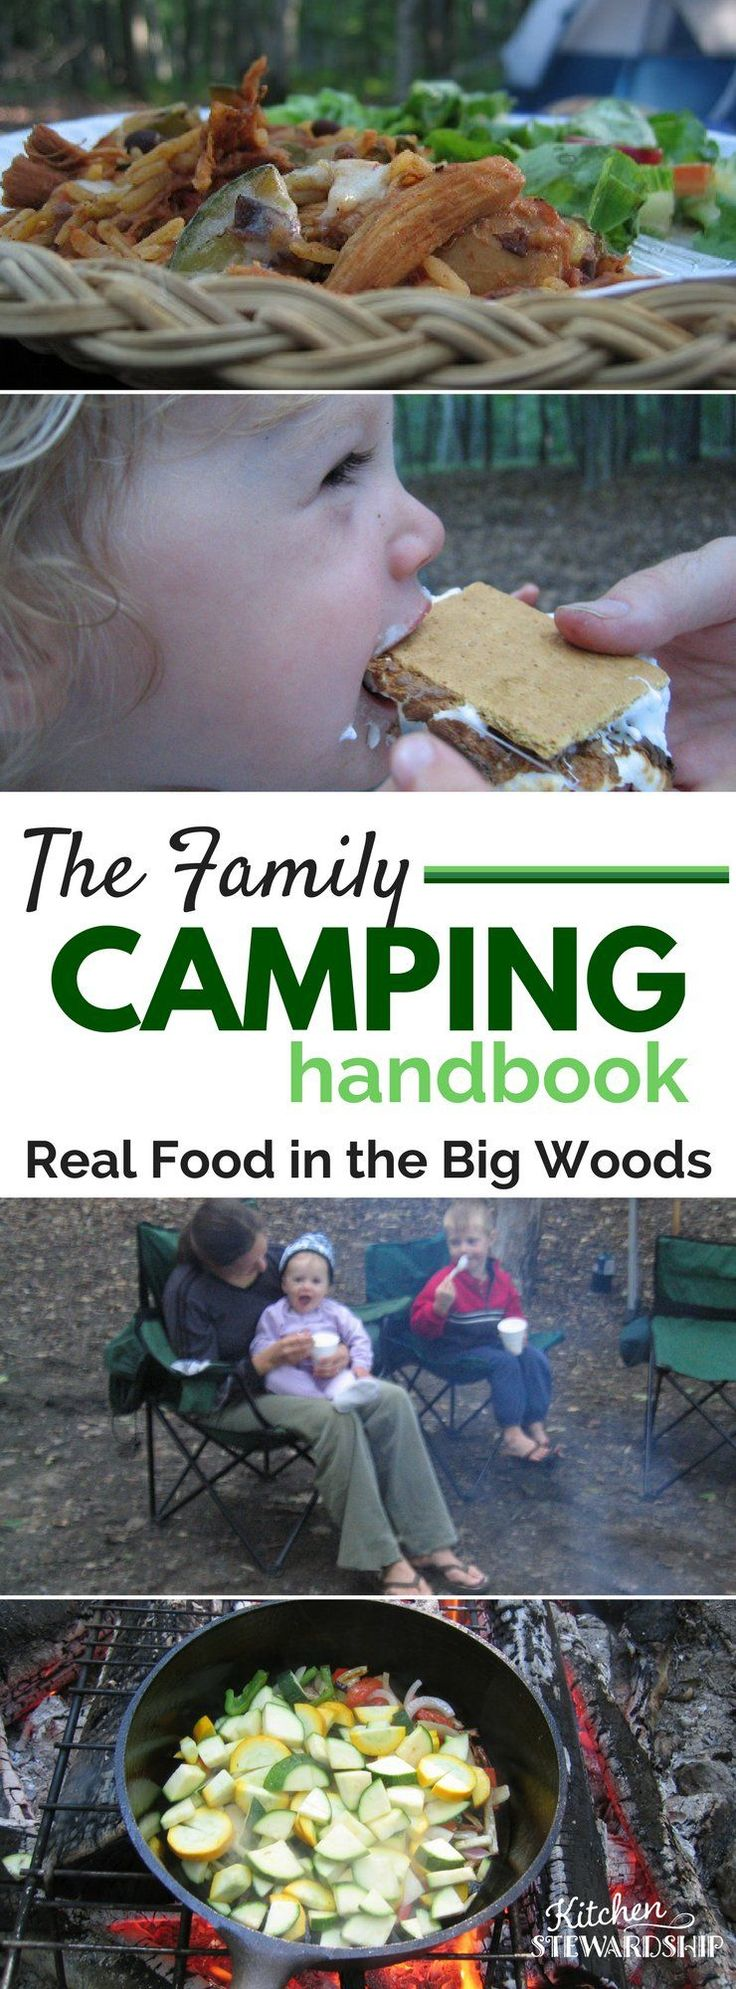 Best 25 Food To Bring Camping Ideas On Pinterest Camping Packing Hacks Camping 2017 And